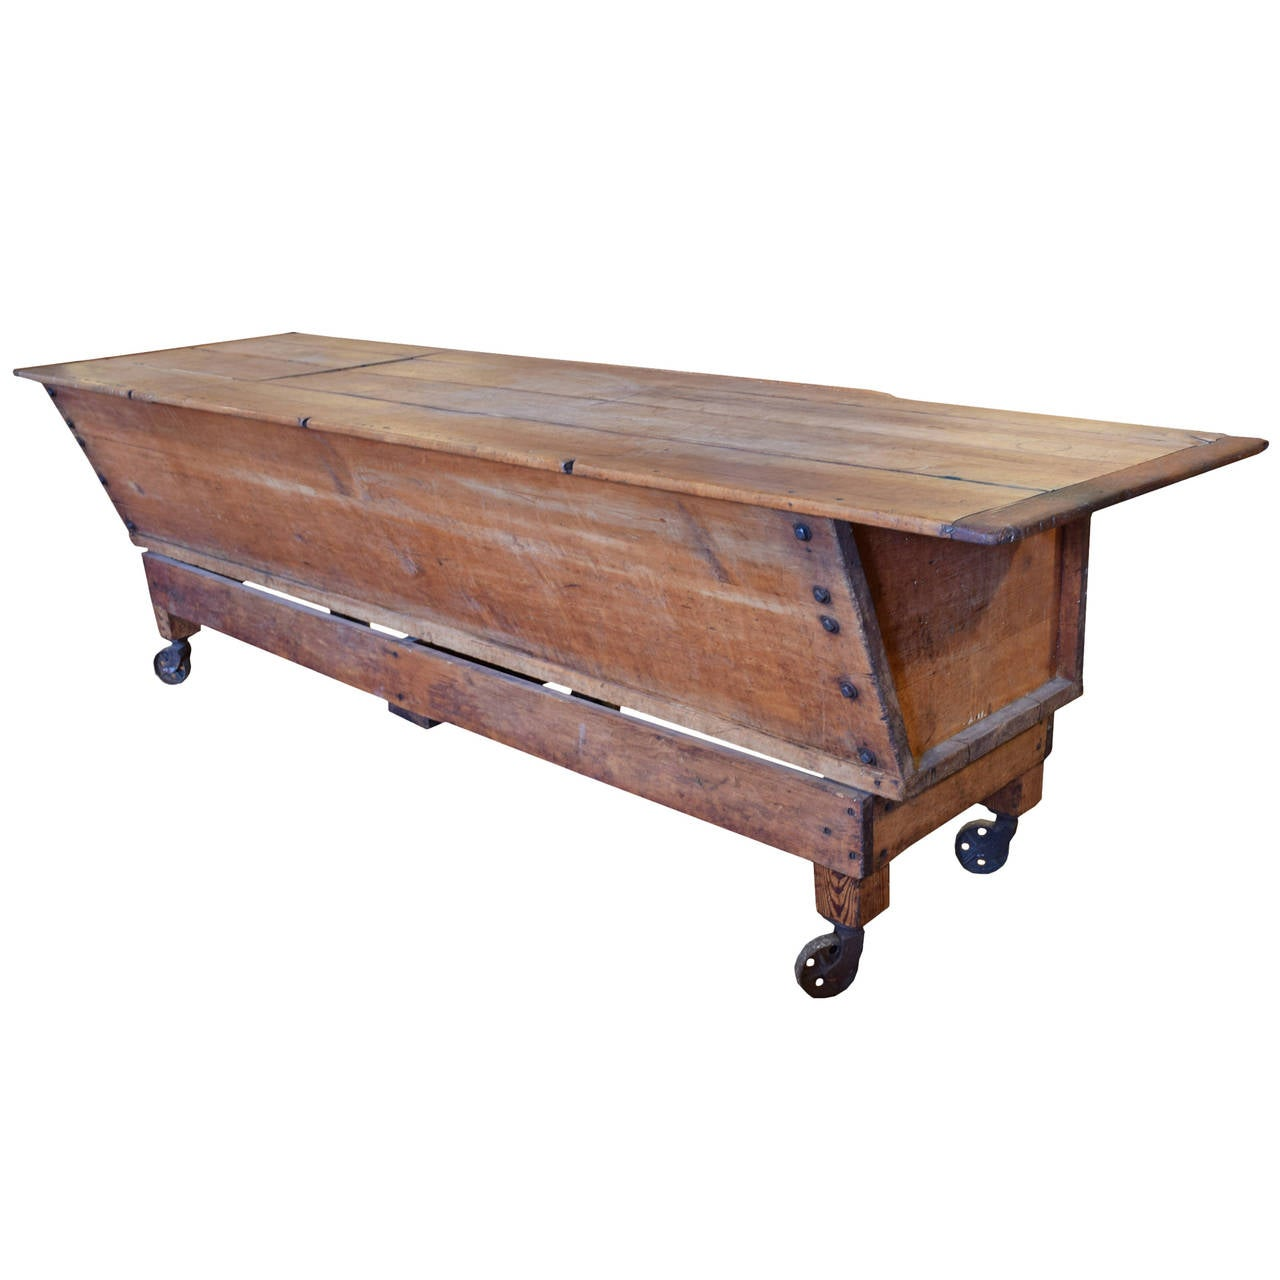 Early 20th century american dough table for sale at 1stdibs - Archives departementales 33 tables decennales ...